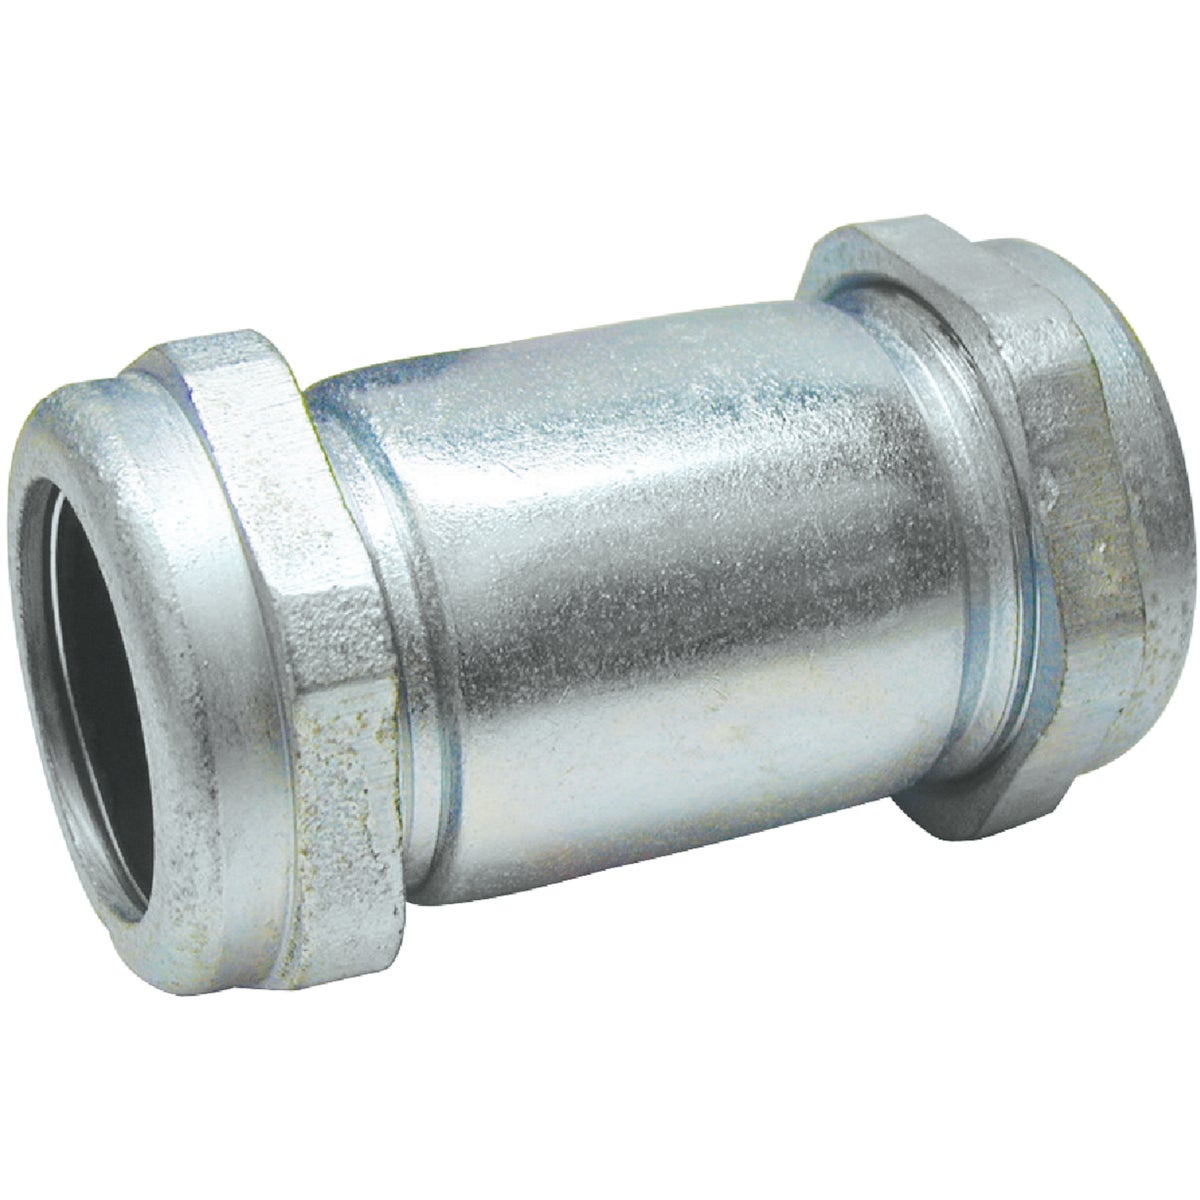 1-1/2X5 GALV COUPLING